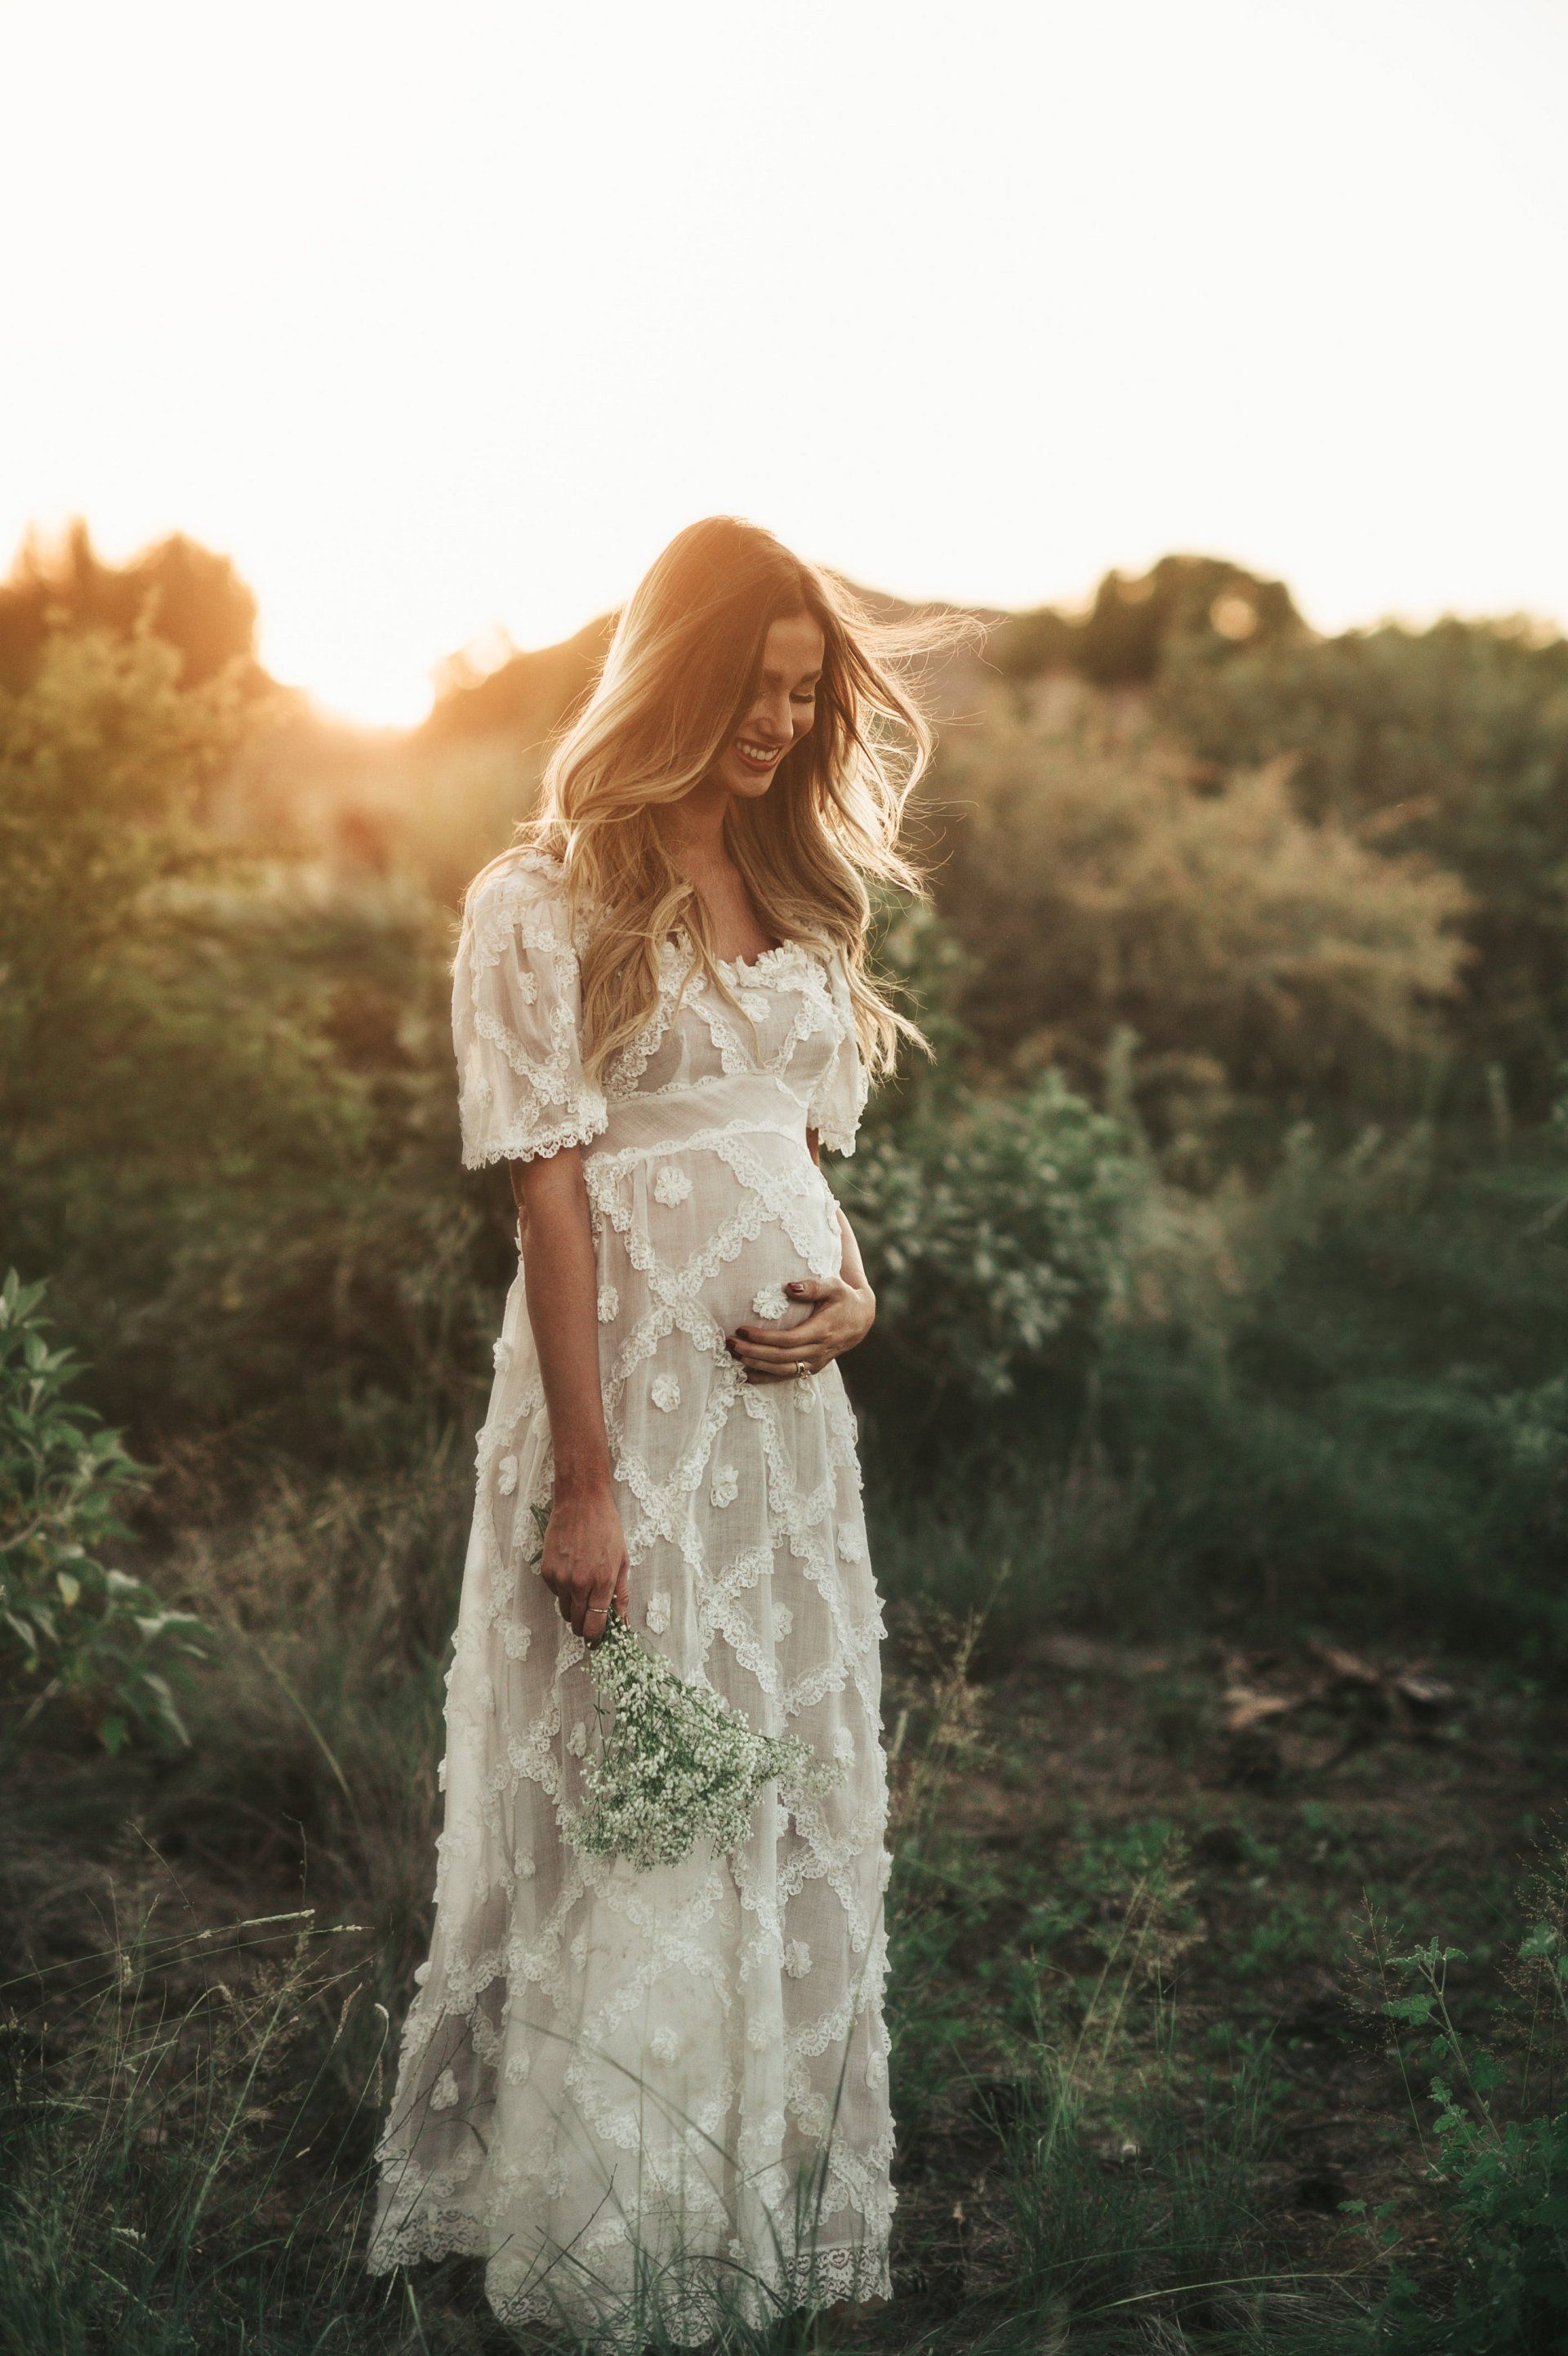 Our Maternity Session